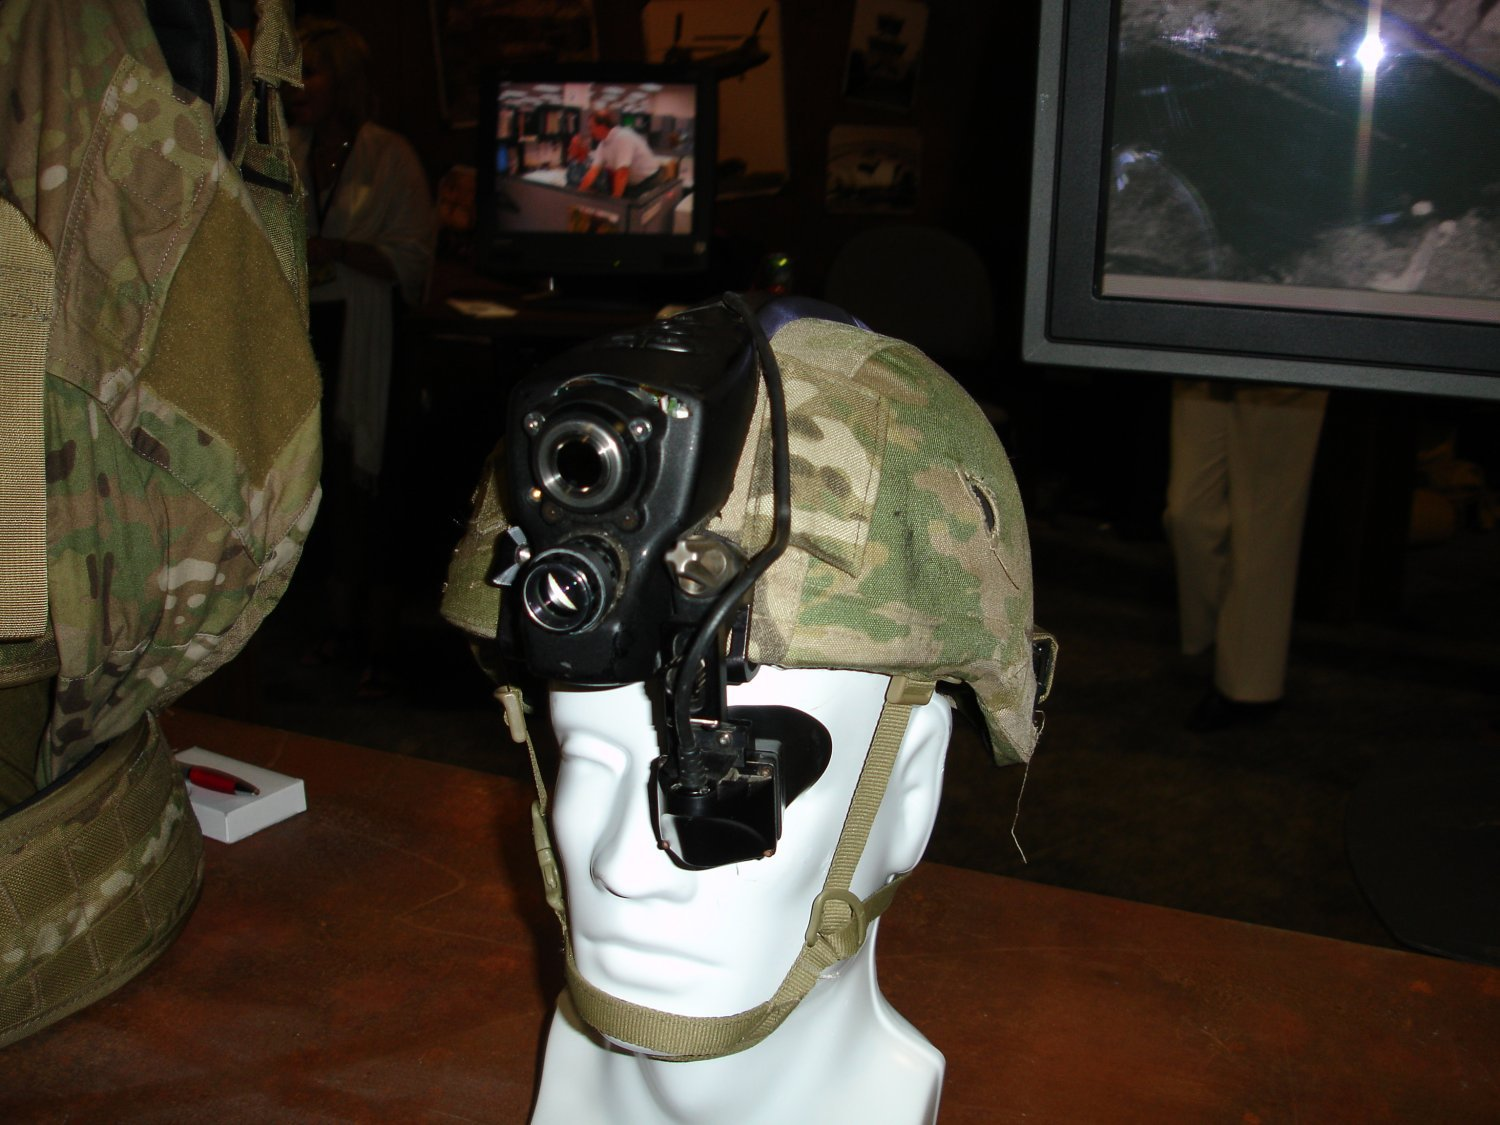 AUSAWinterSymposiumandExhibition2007 FutureForceWarrior RockwellCollinsFusedSensorHMD 1 <!  :en  >Infrared/Night Vision Fusion HMD Developed for Future Force Warrior (FFW)<!  :  >